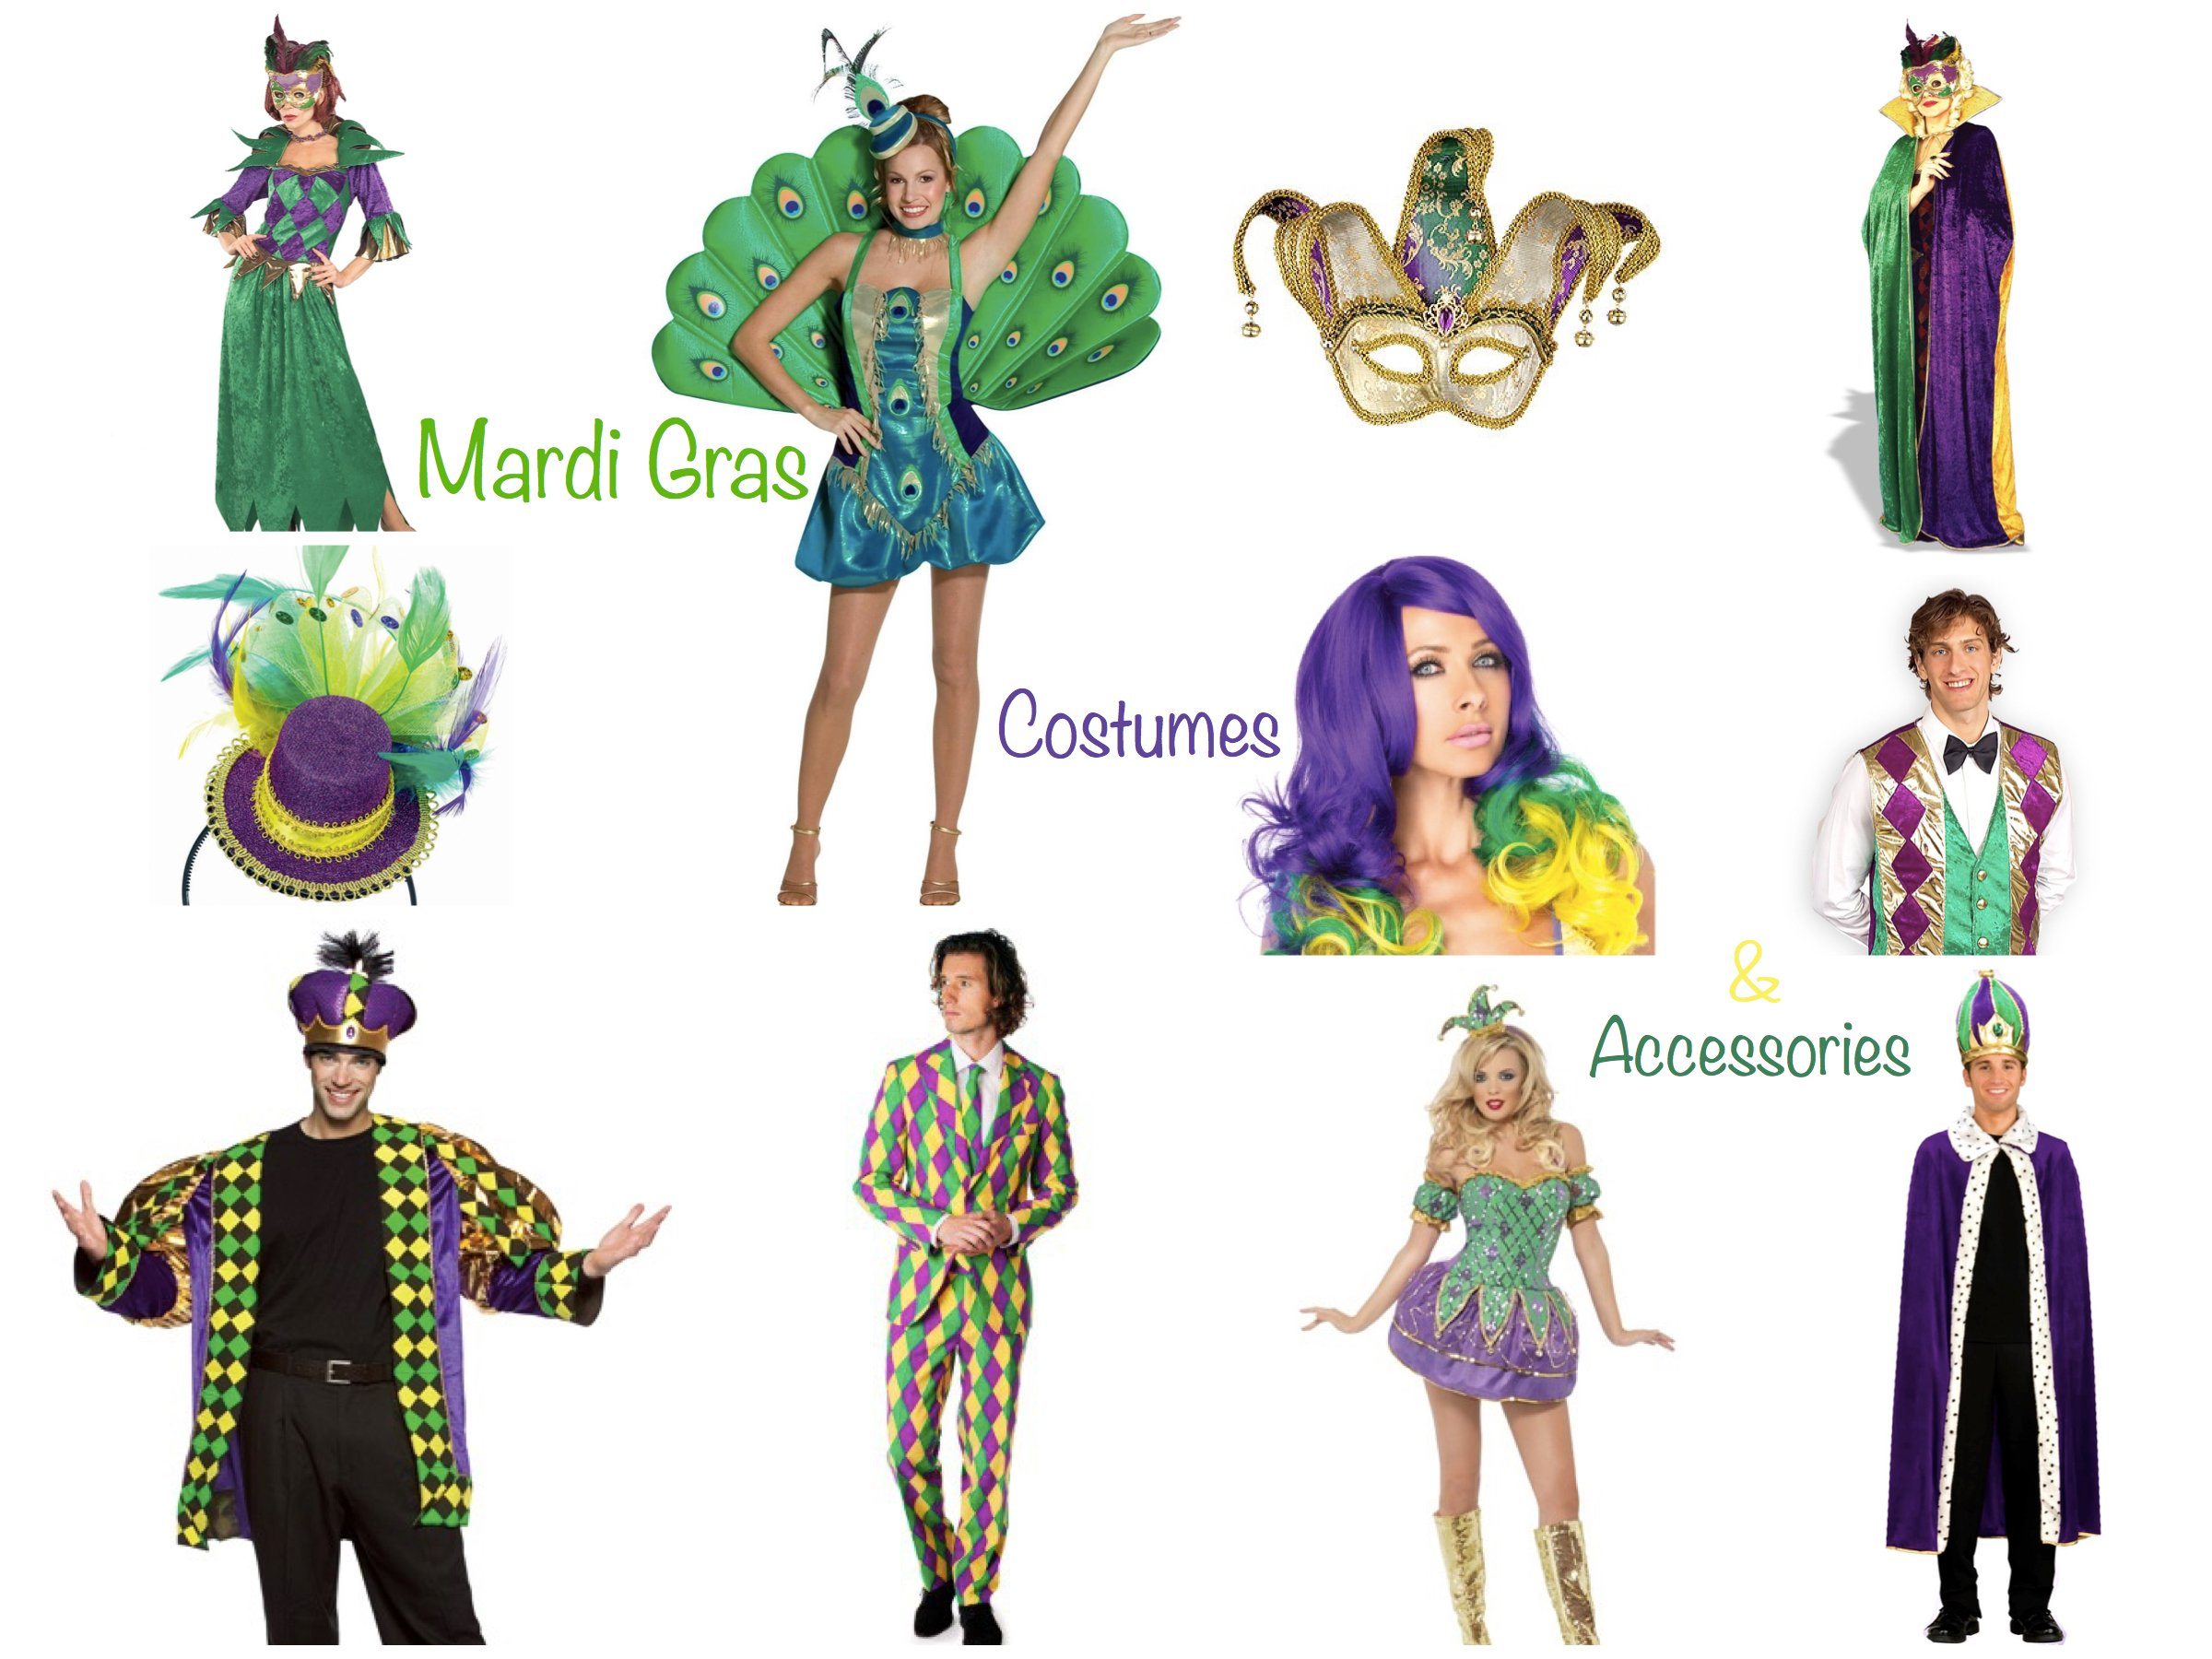 Mardi Gras Couples Costumes & Accessories